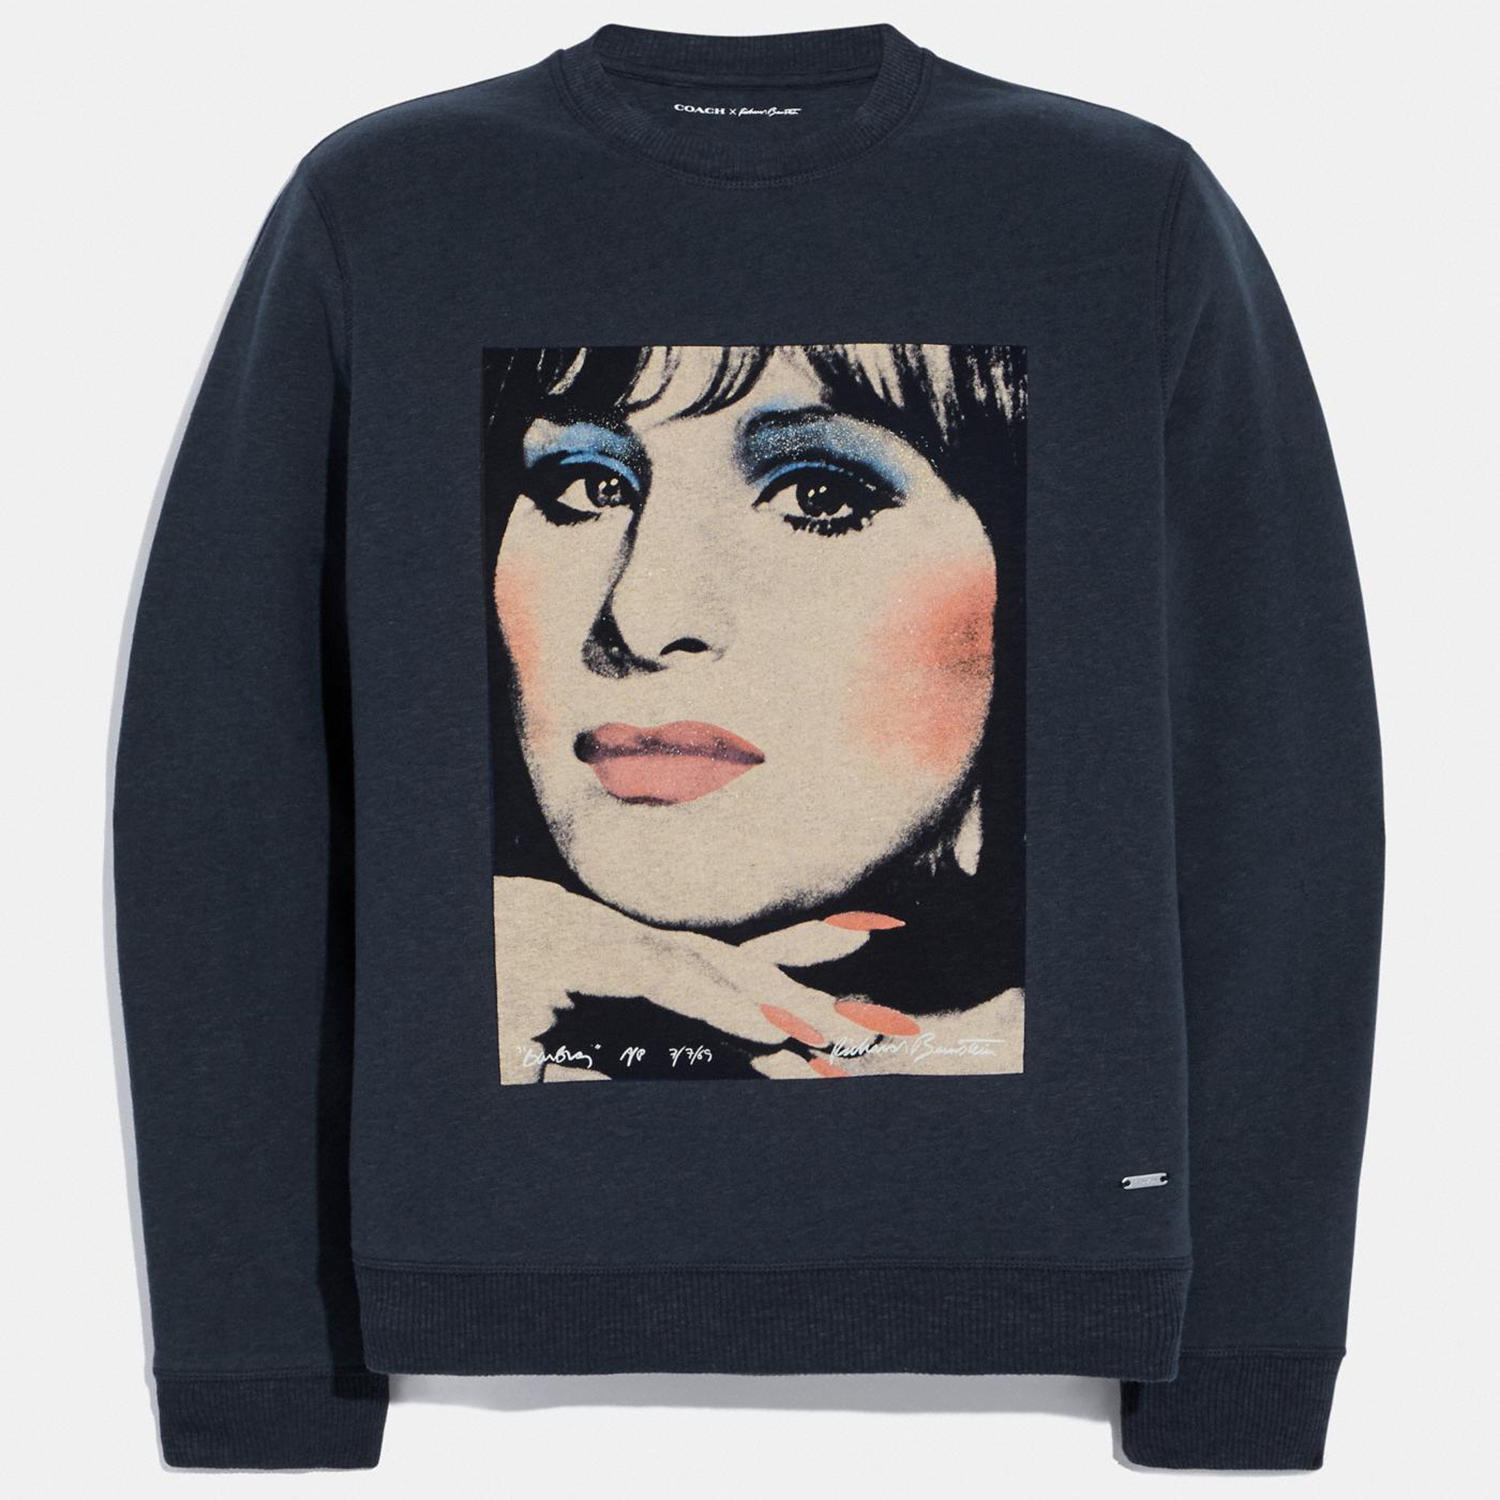 COACH X Richard Bernstein Sweatshirt With Barbra Streisand Black